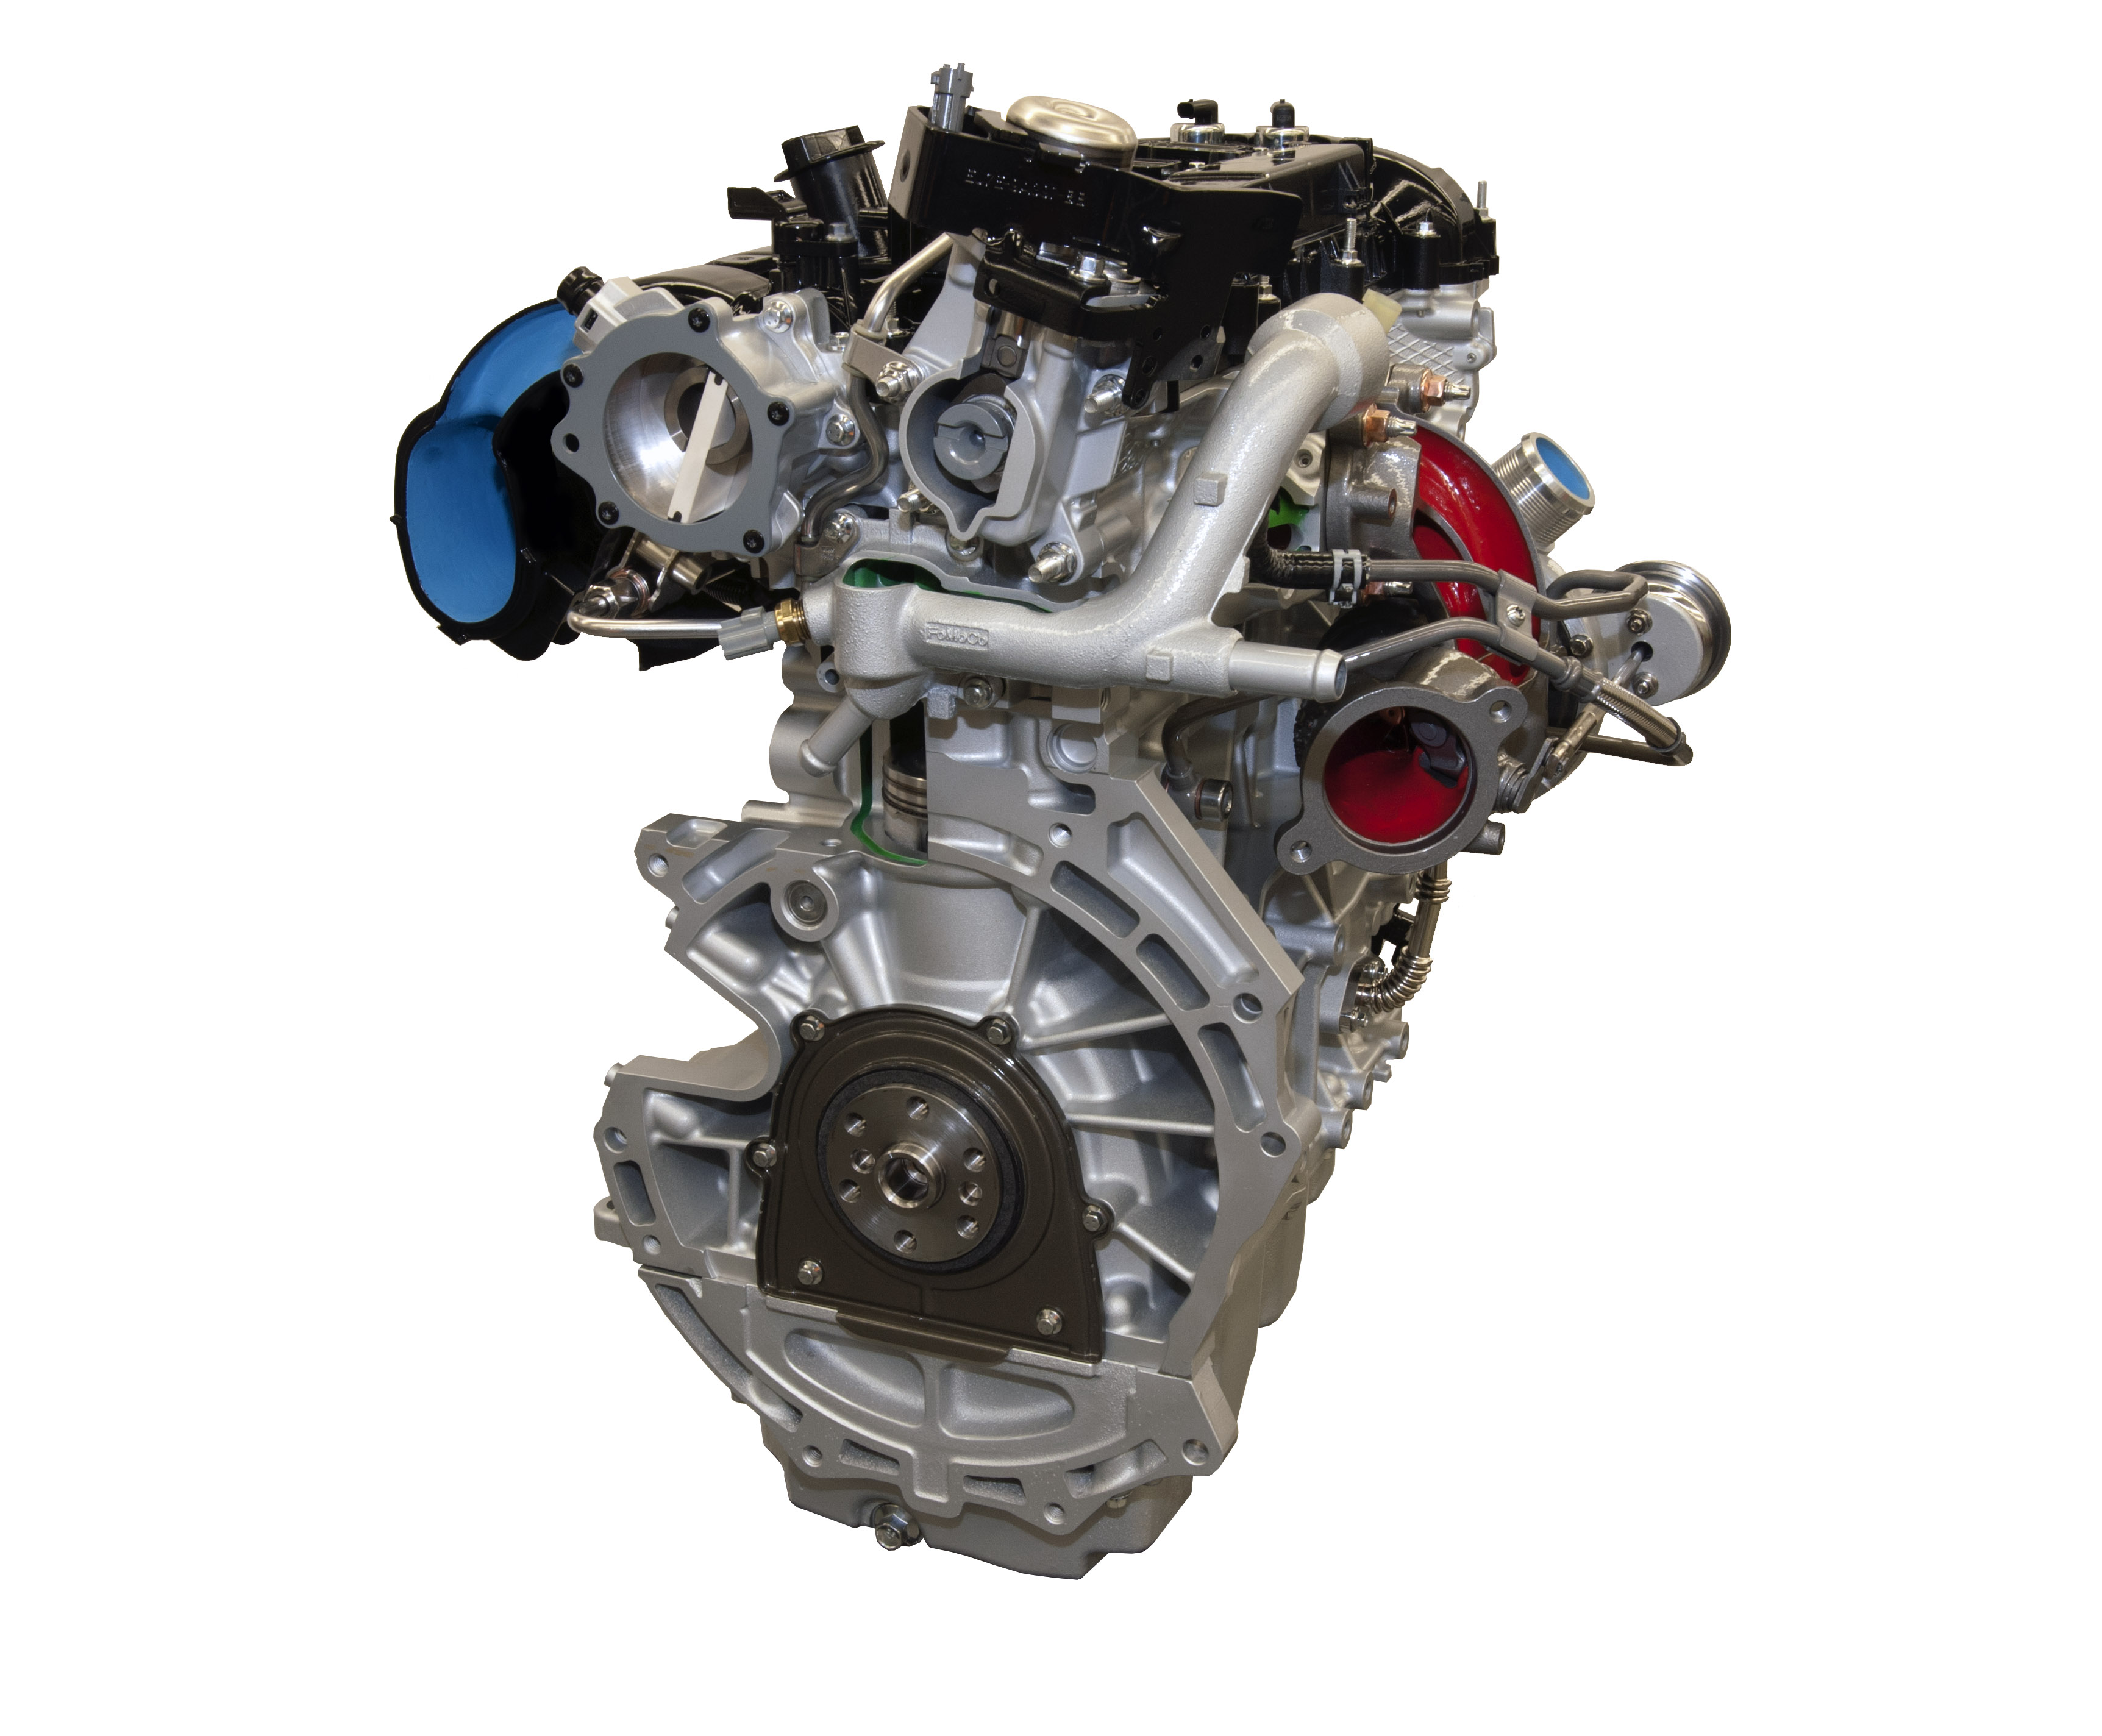 2015 Mustang. The engine ...